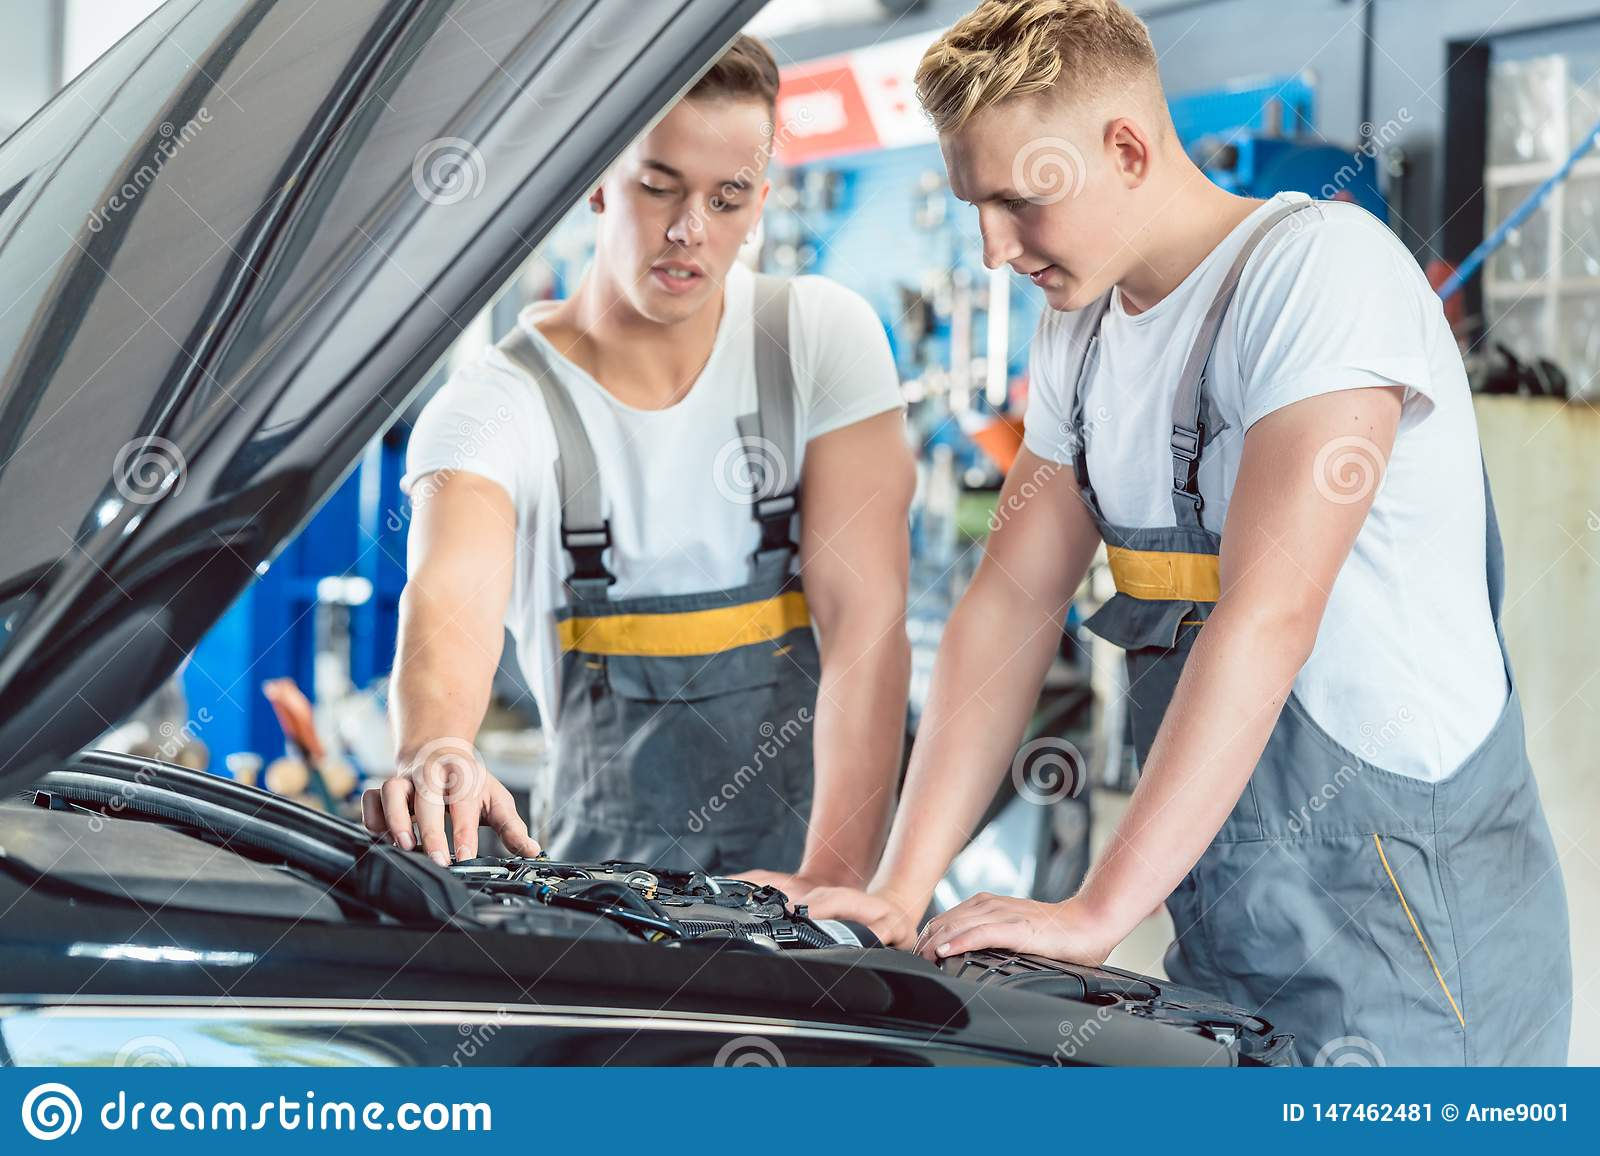 Reliable Auto Mechanics >> Experienced Auto Mechanic Checking The Parts Of A Car In A